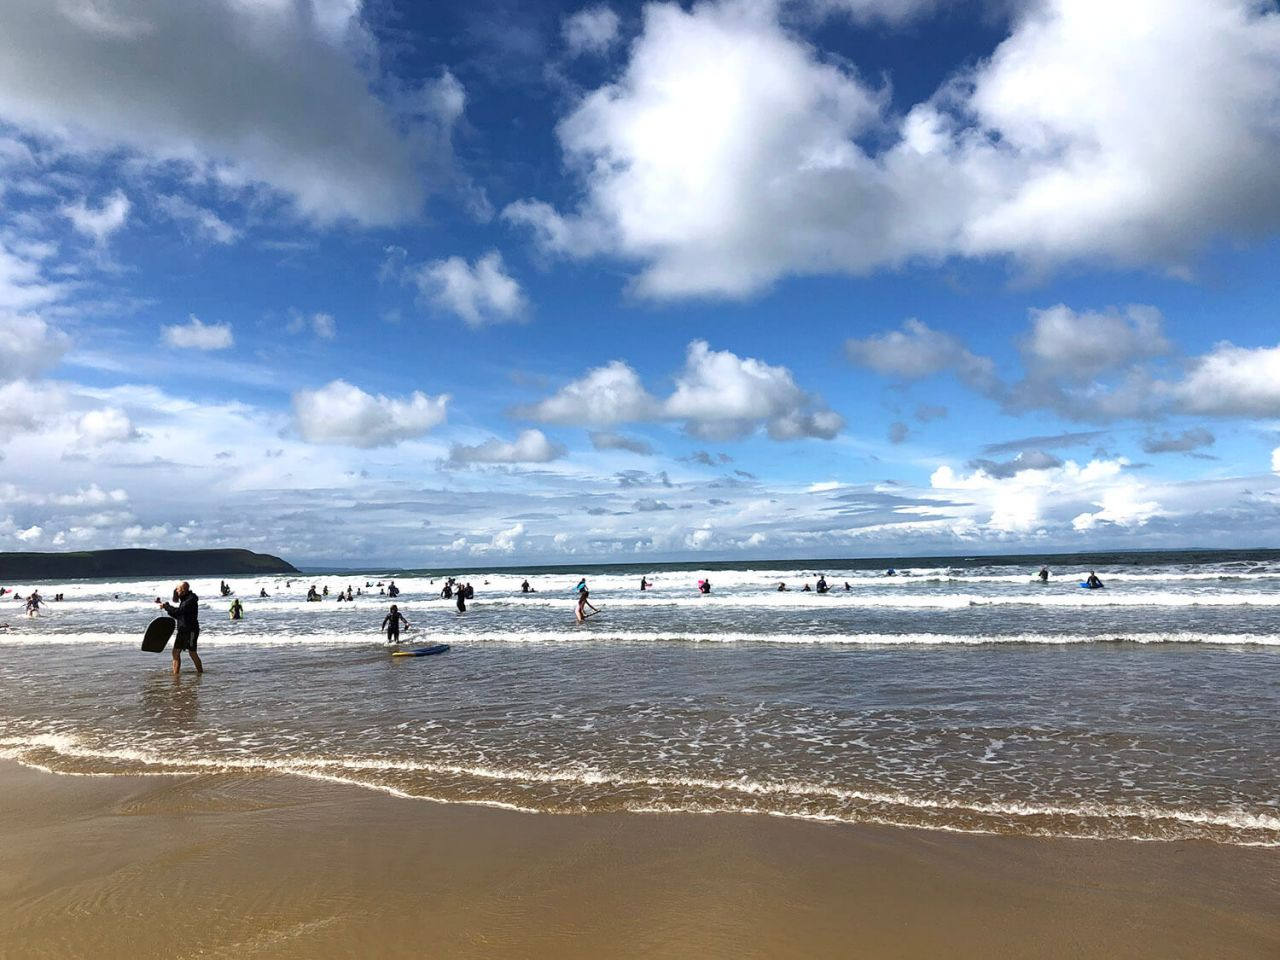 UK staycation at woolacombe beach